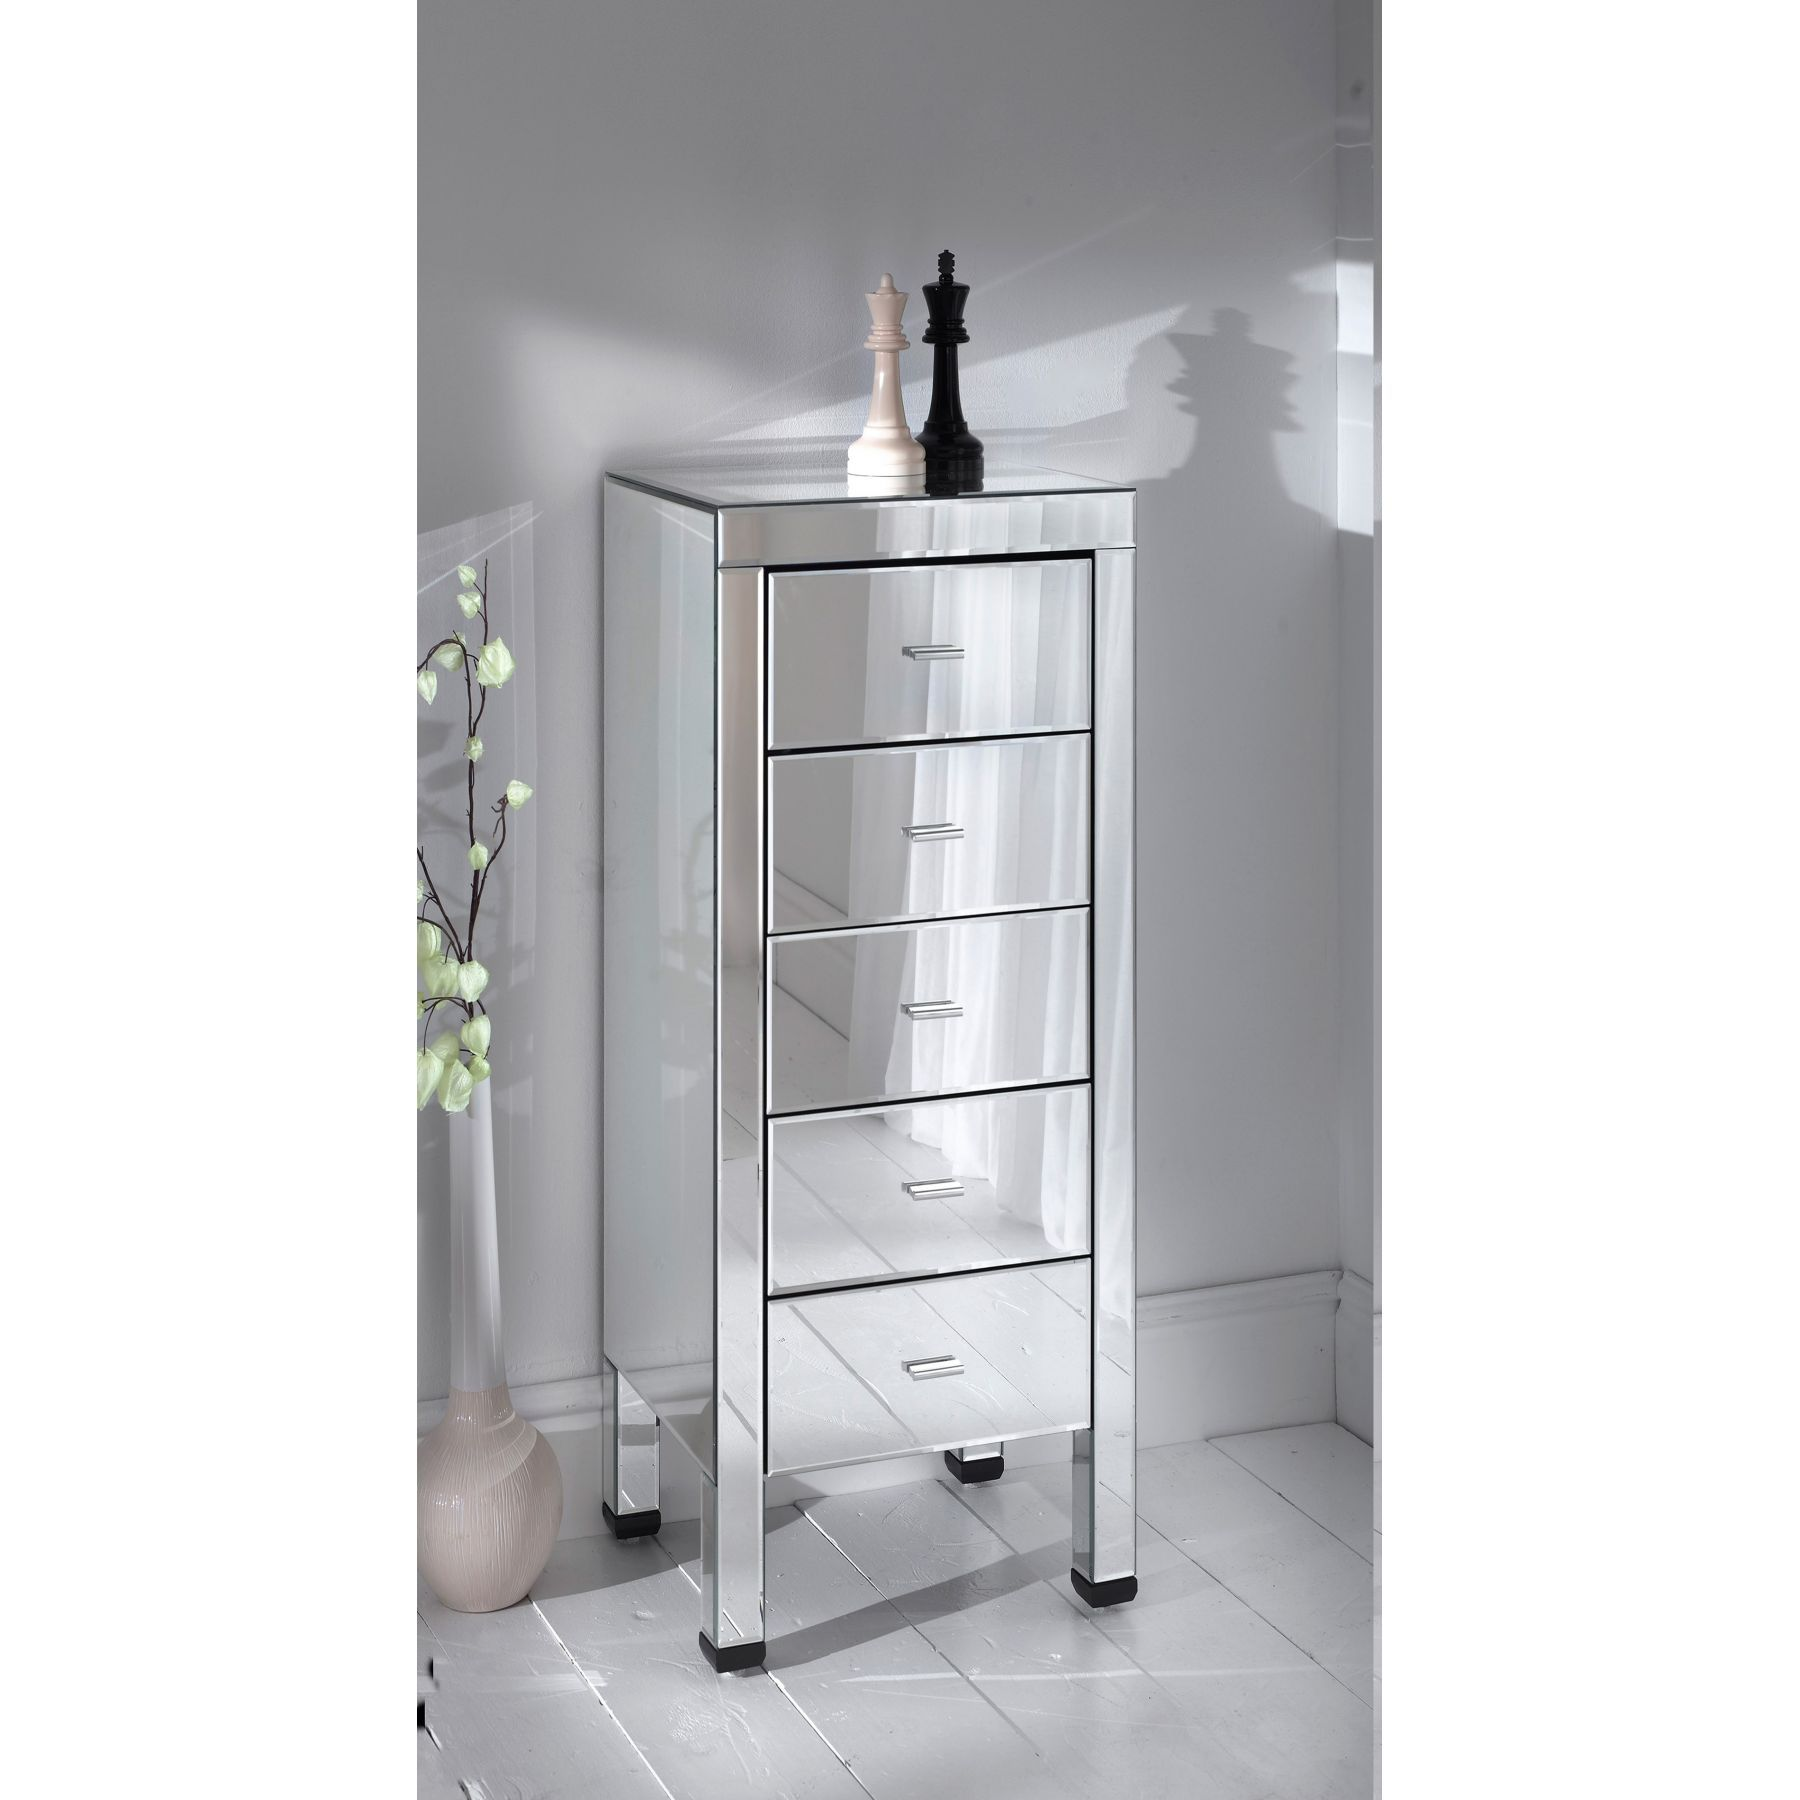 Narrow tall chest of drawers perfect elysee mirrored for Narrow dressing table with drawers